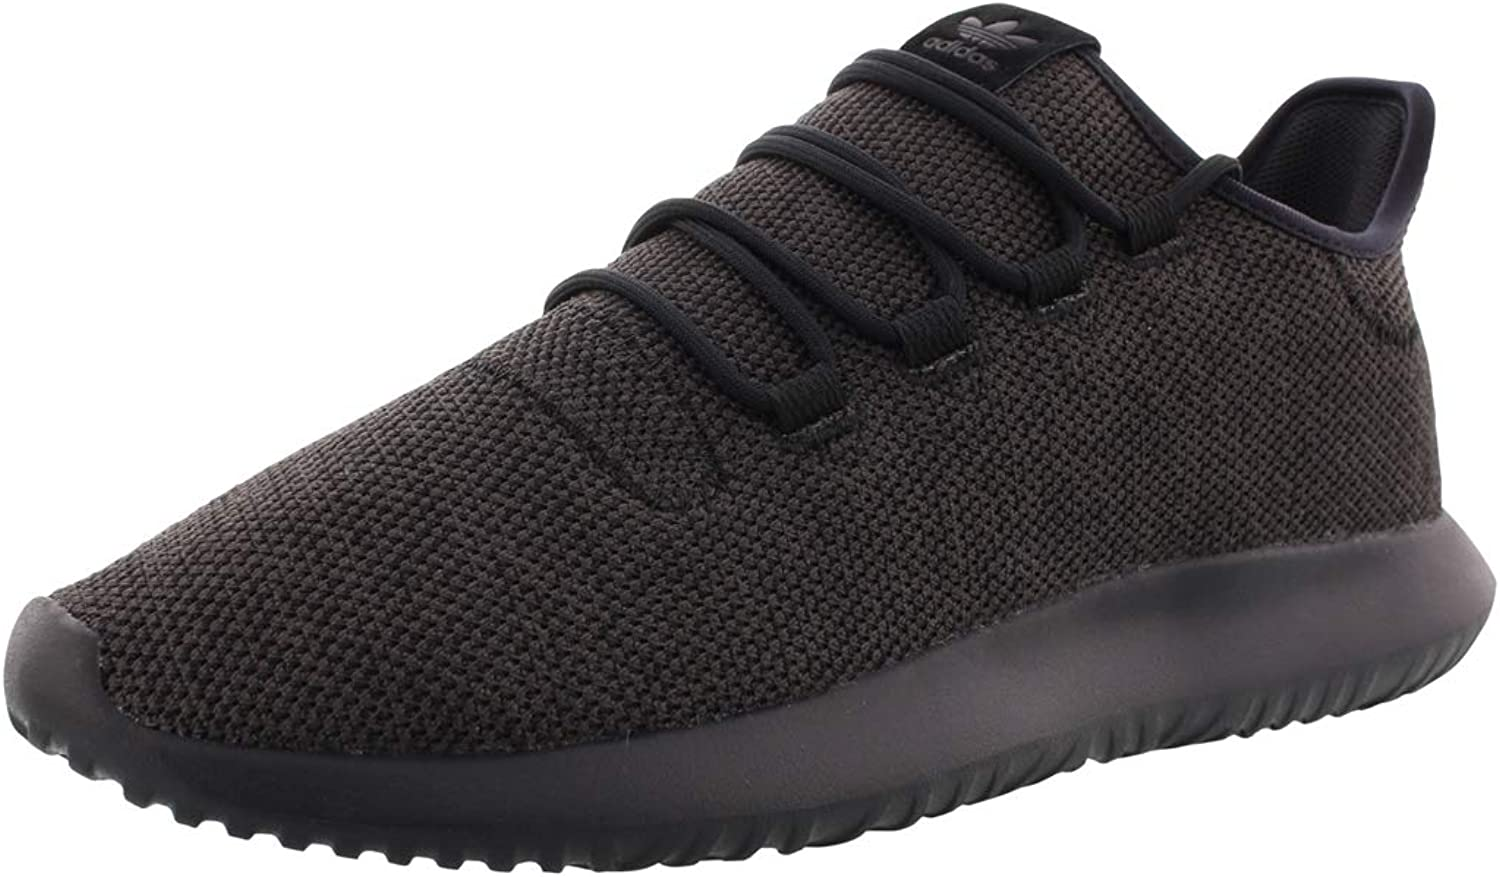 Adidas Tubular Shadow Athletic Men's shoes Size